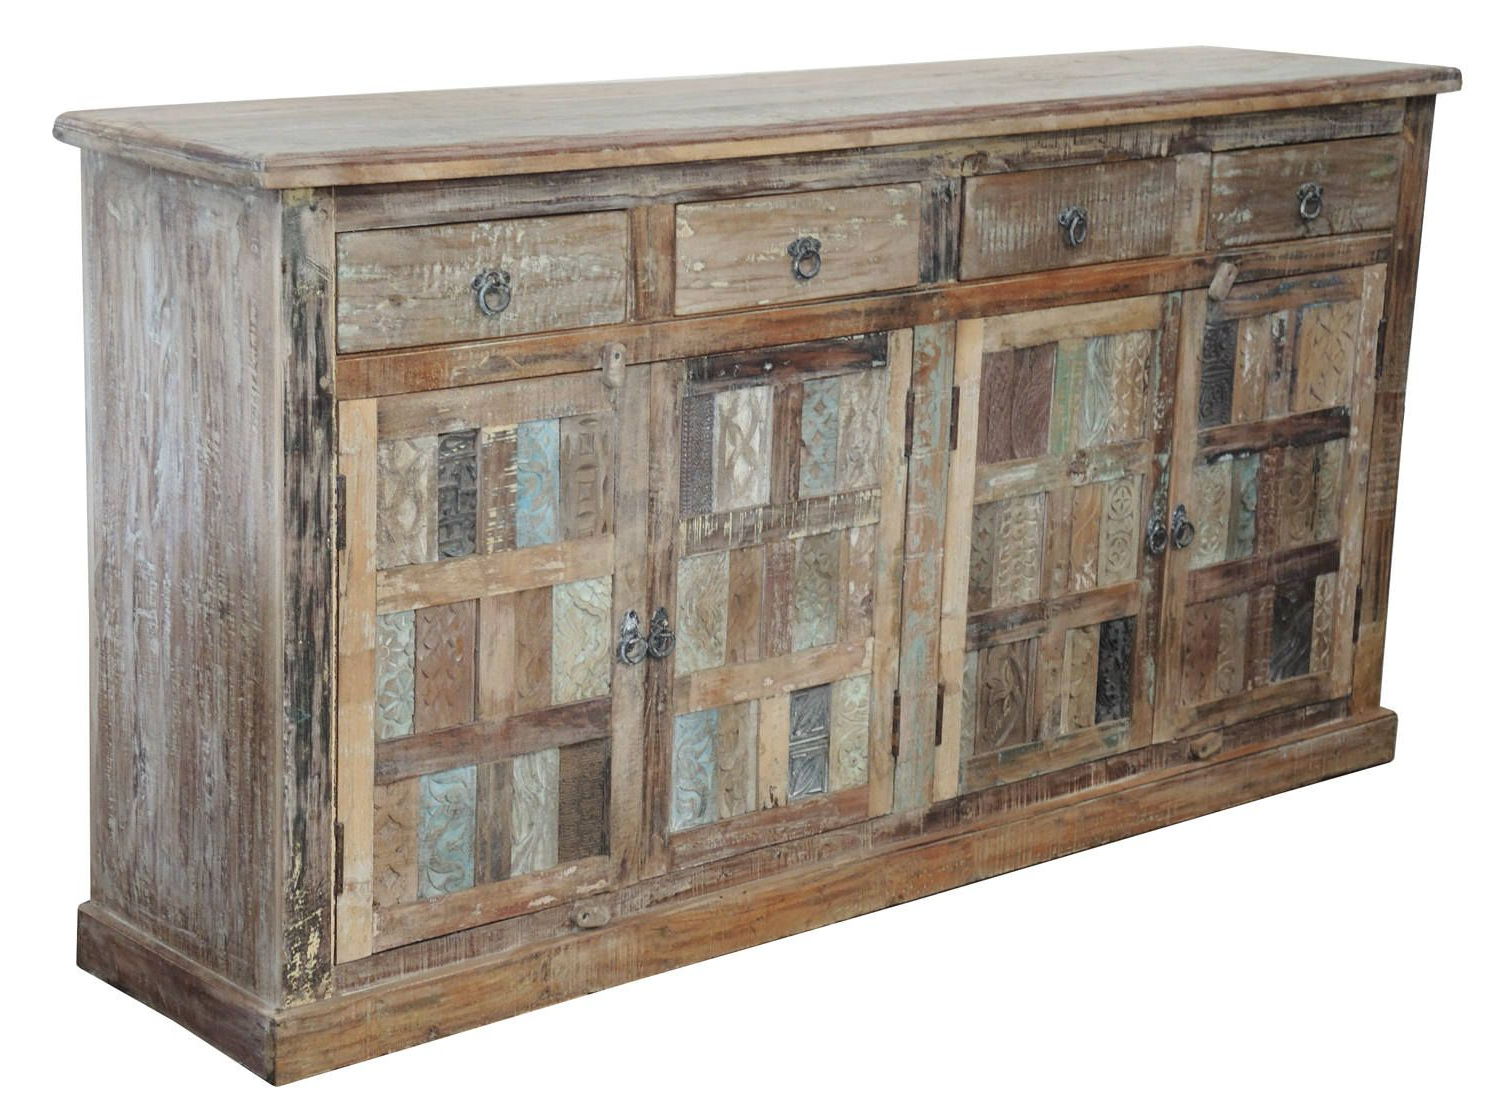 Widely Used Hayslett Sideboards Regarding Light Distressed Indian Teak Cabinet From Terra Nova Designs (View 20 of 20)